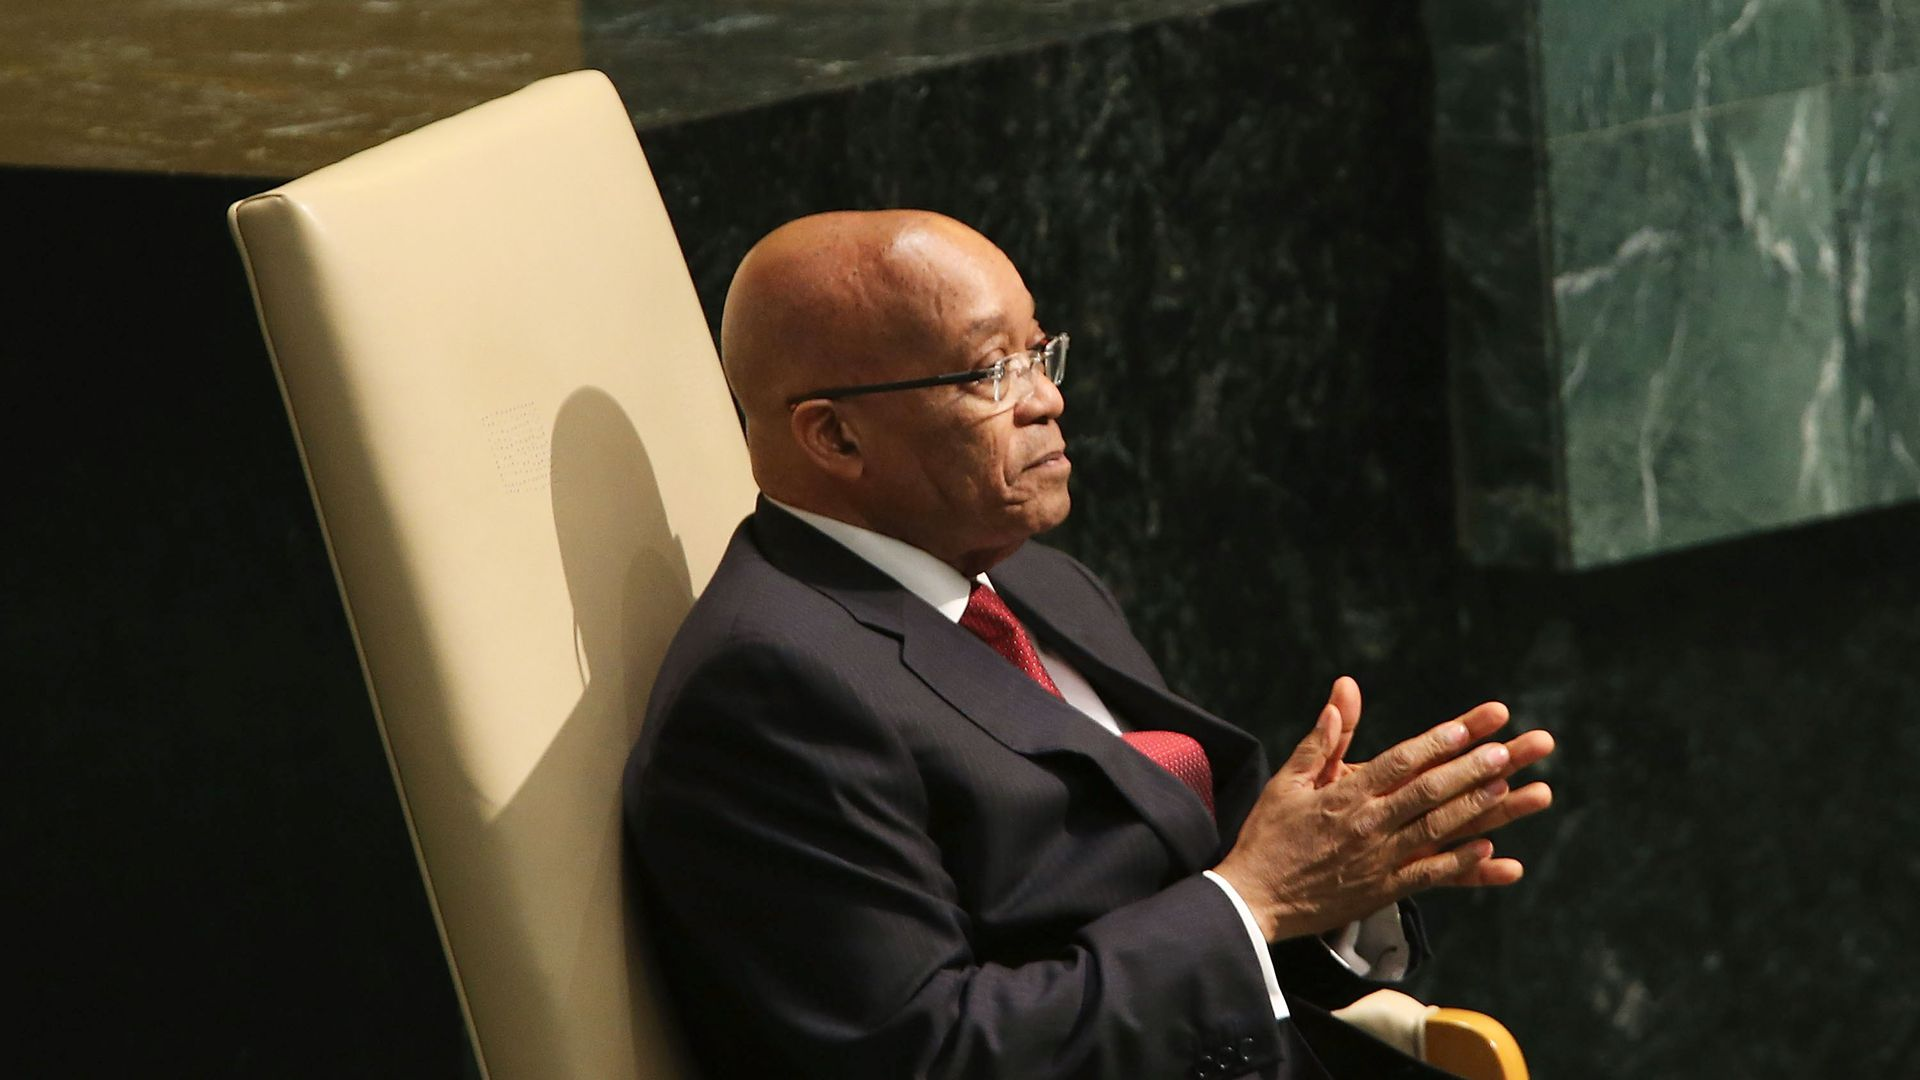 b6276e7624f Zuma s last stand  South African president s time is running out - Axios